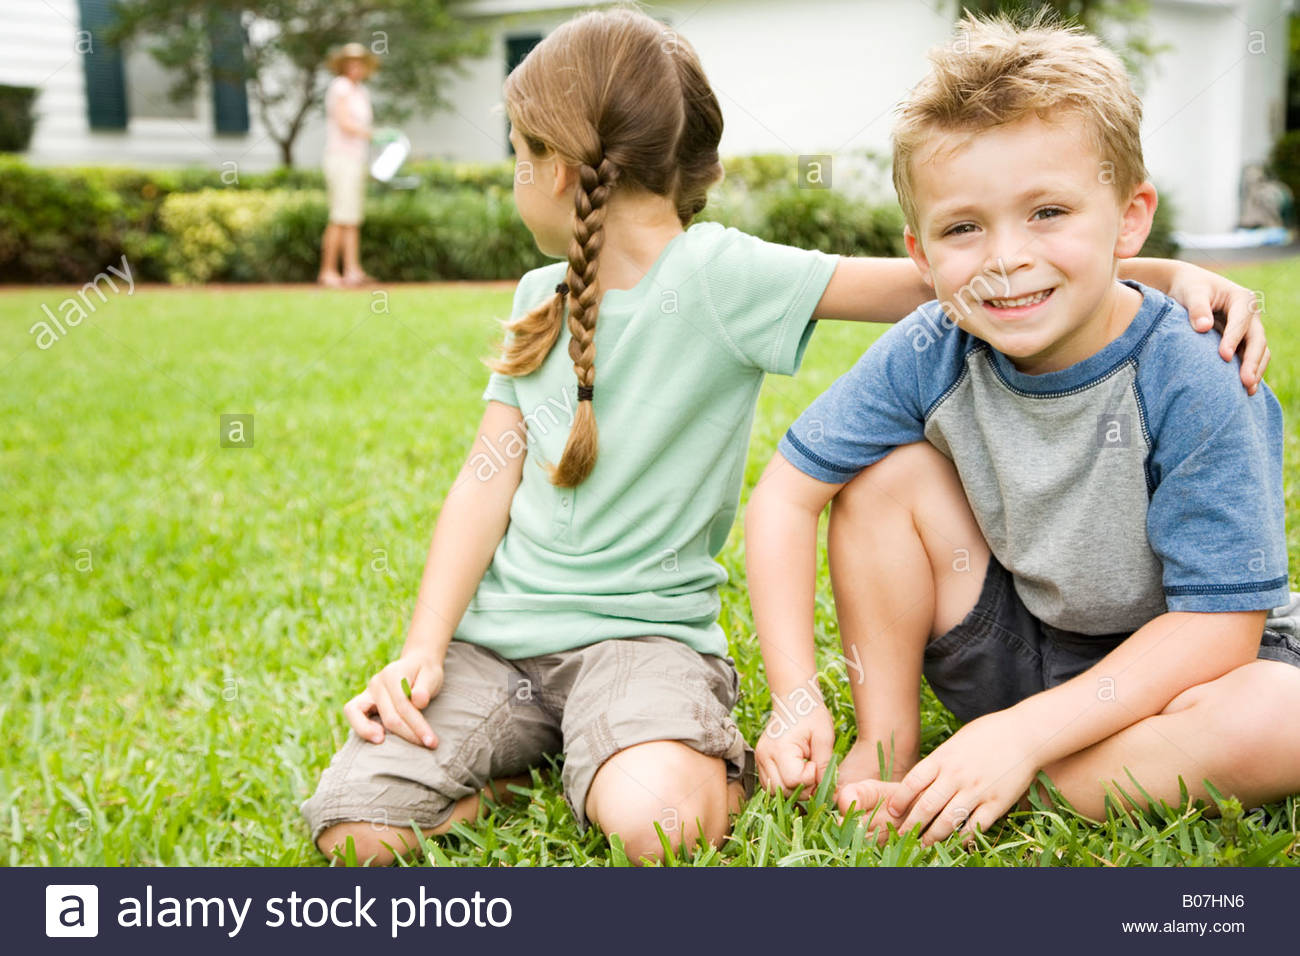 girl and boy sitting on lawn, girl looking behind her - Stock Image